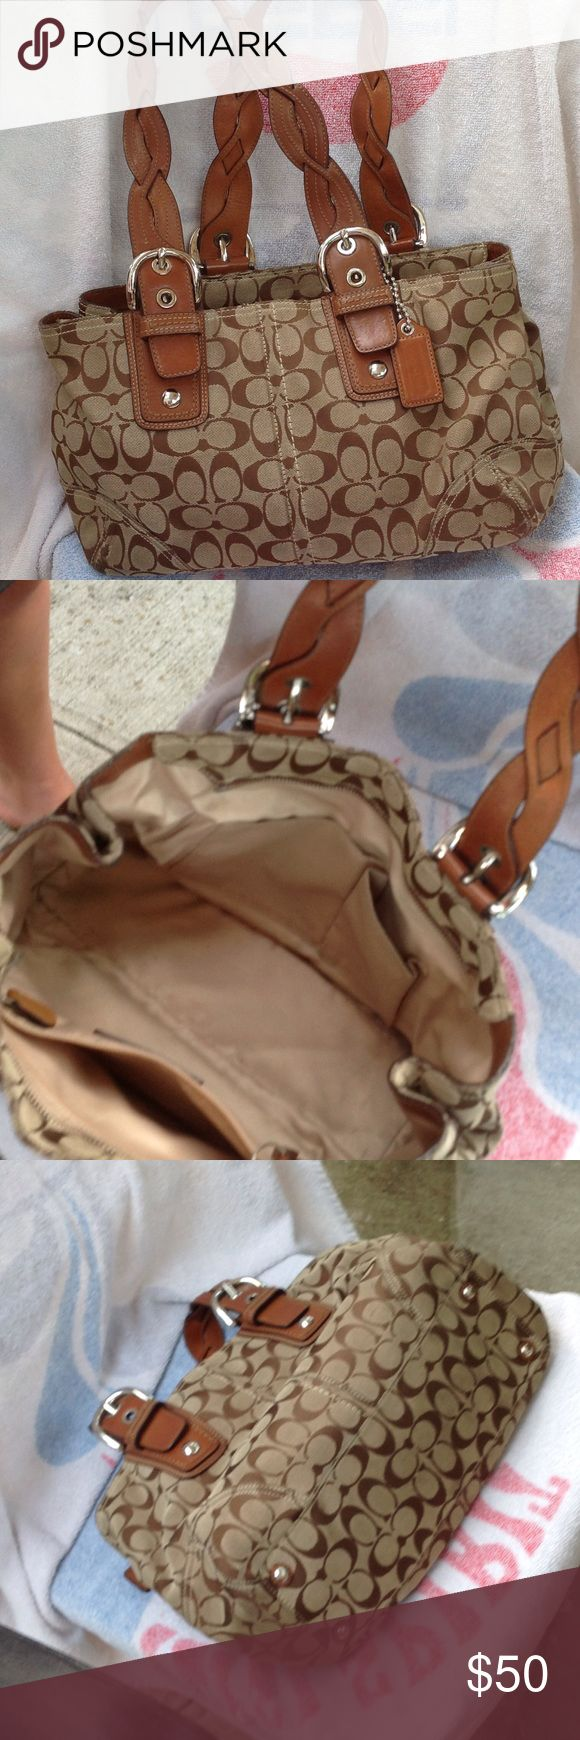 COACH SHOULDER BAG WITH BRAIDED STRAPS Coach Shoulder Bag with braided straps, used, with few scruffs on bottom but overall okay condition. Has one large pocket, light brown 'c' material. Coach Bags Shoulder Bags